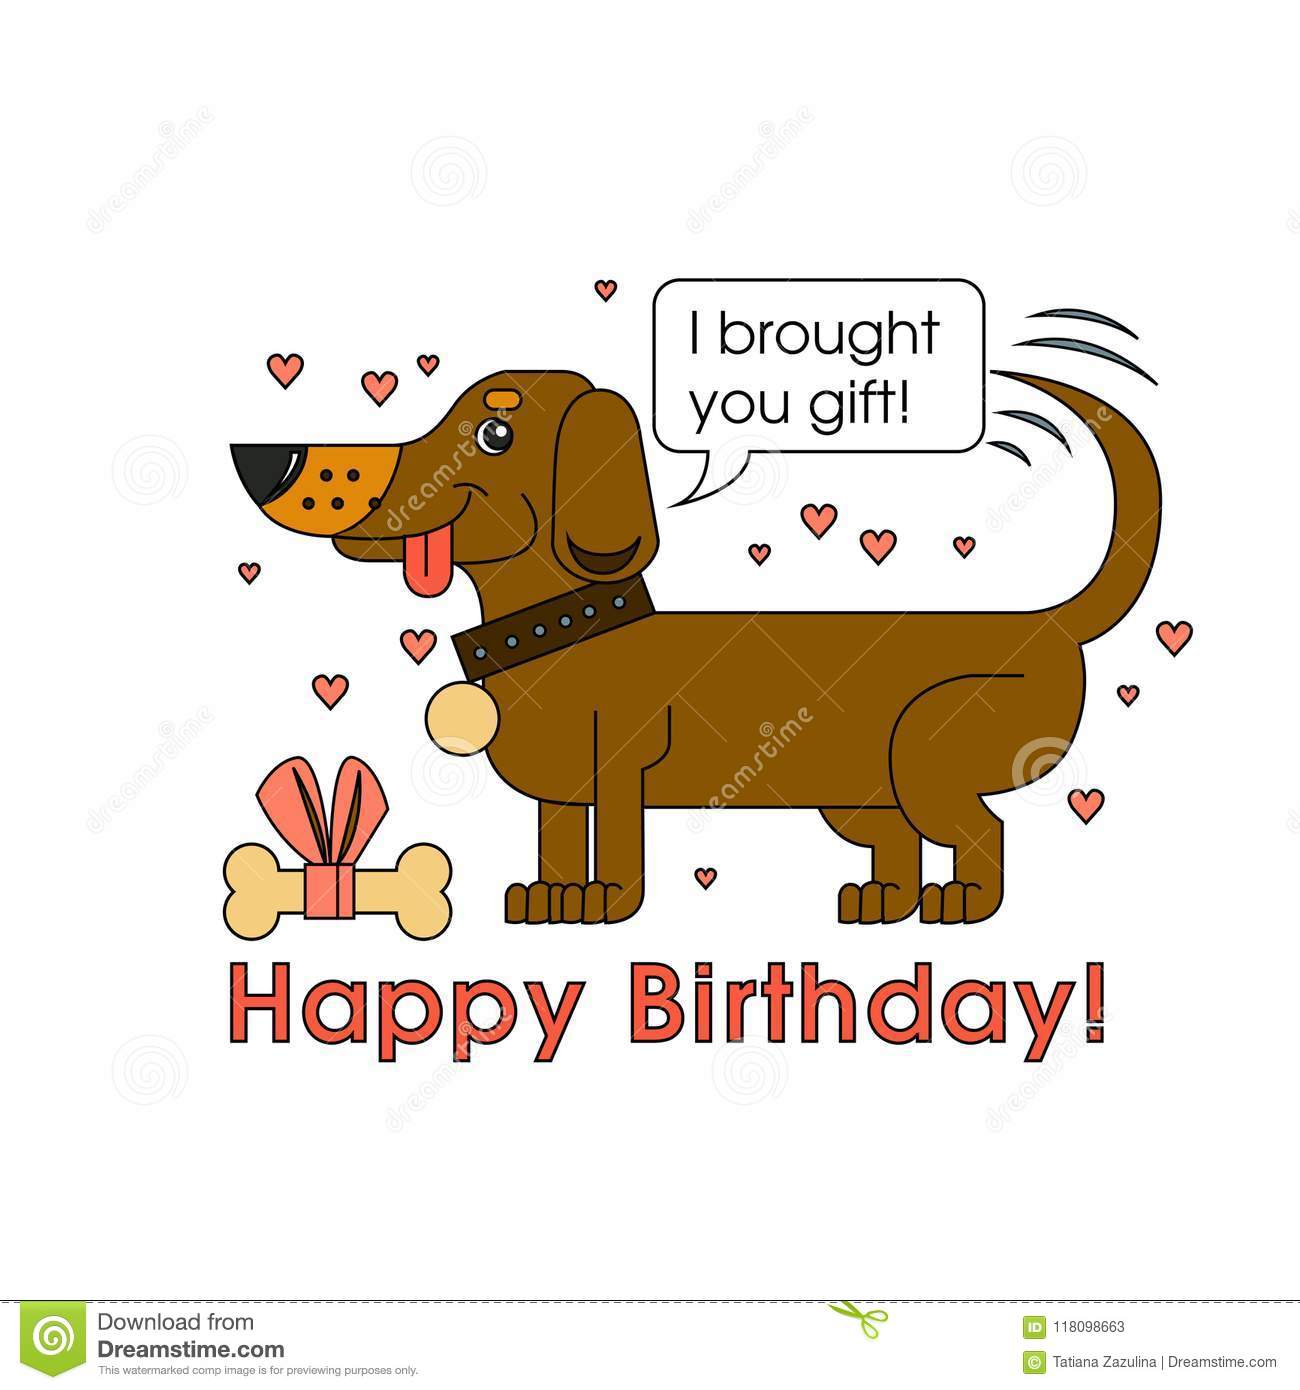 A Little Cute Dog Of The Breed Dachshund Congratulates On His Birthday And Brought Best Gift Greeting Card For